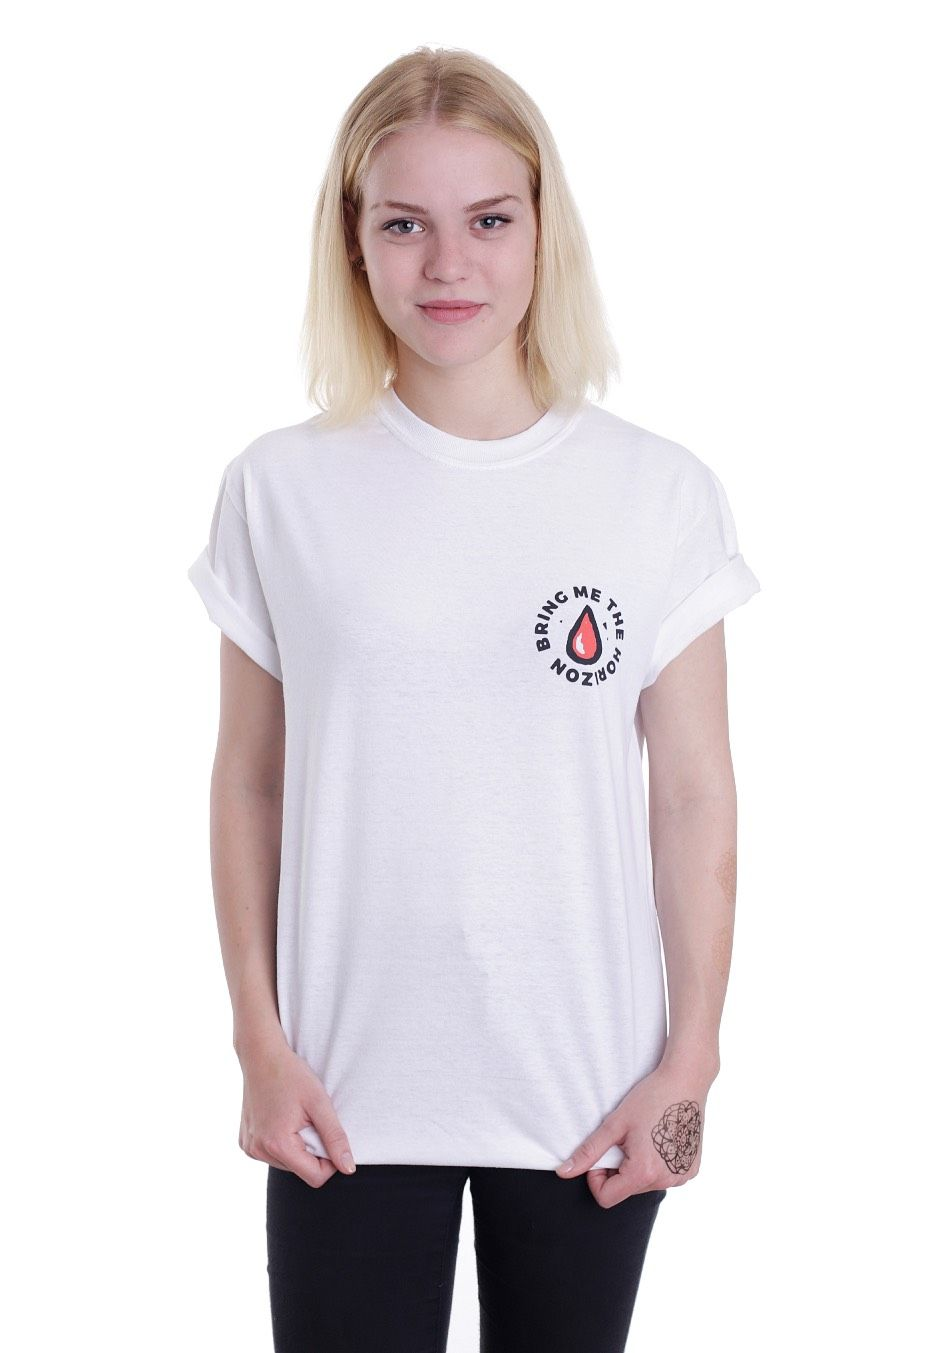 Checkout this out: Bring Me The Horizon - Vampires White - T-Shirt for 18,99€